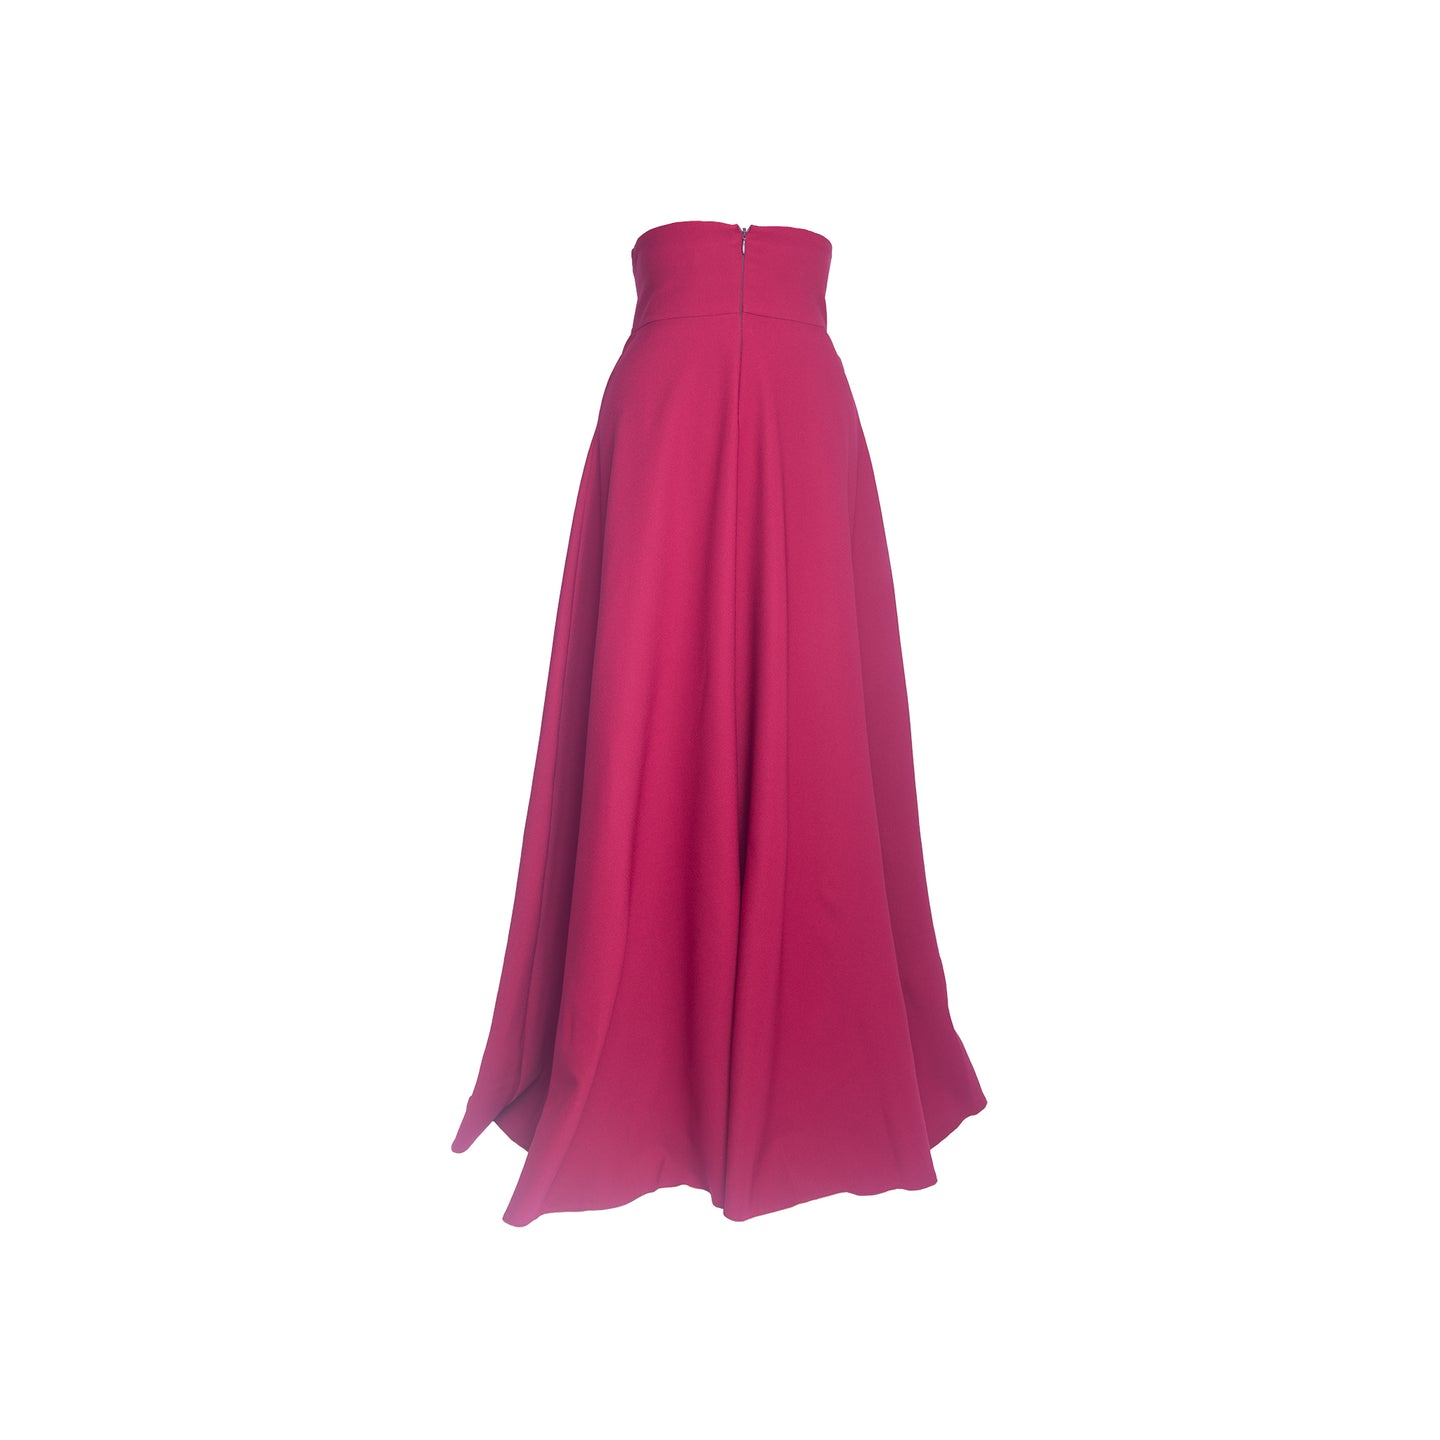 Maroon high waist maxi skirt with back zip